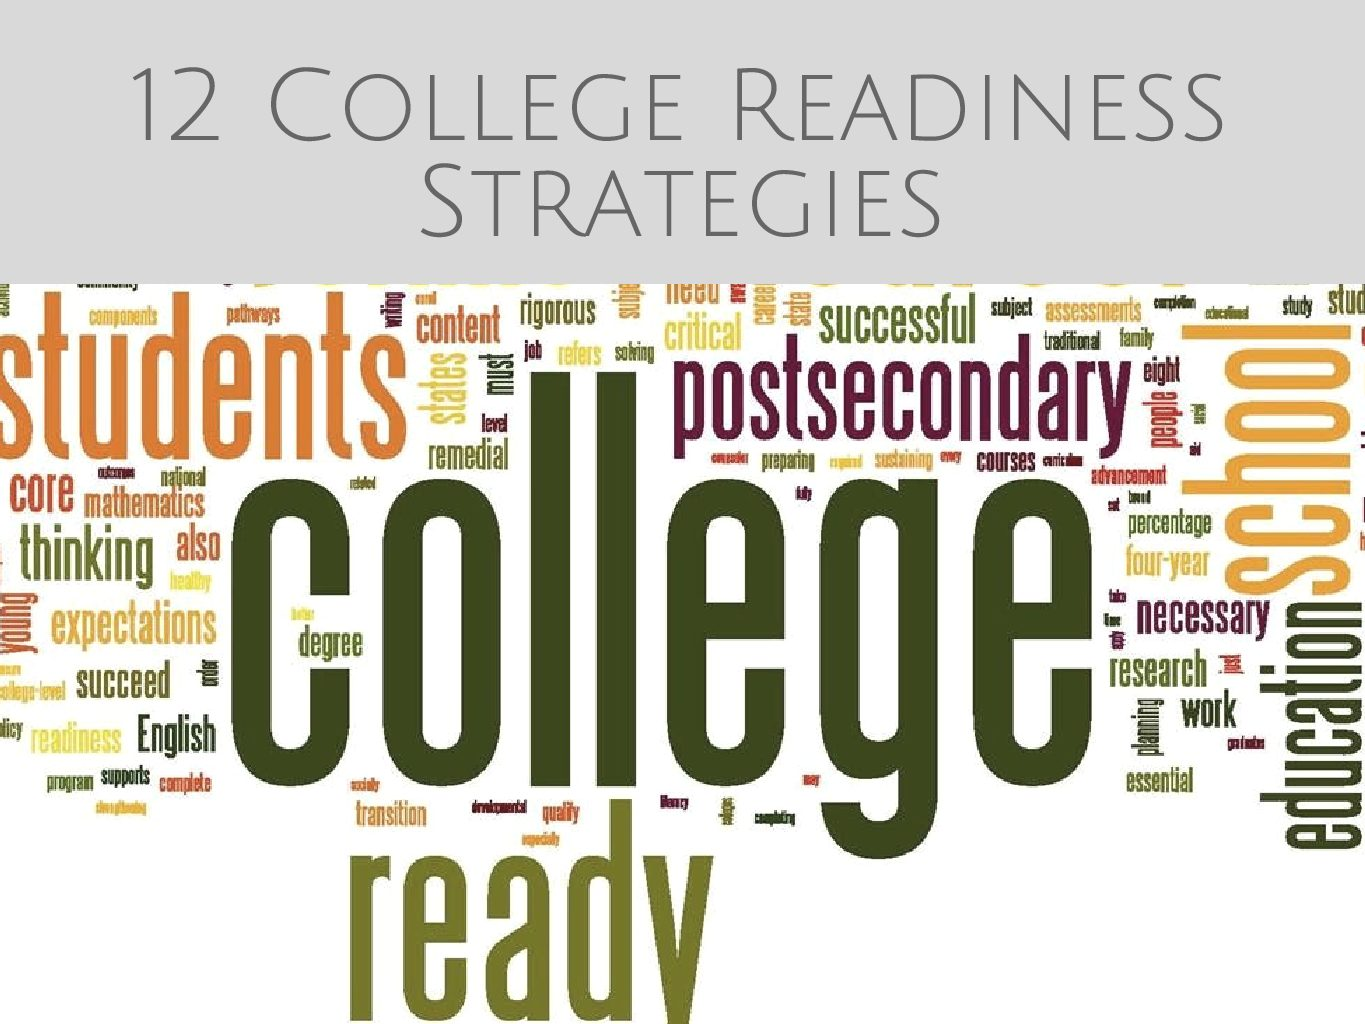 12 College Readiness Strategies